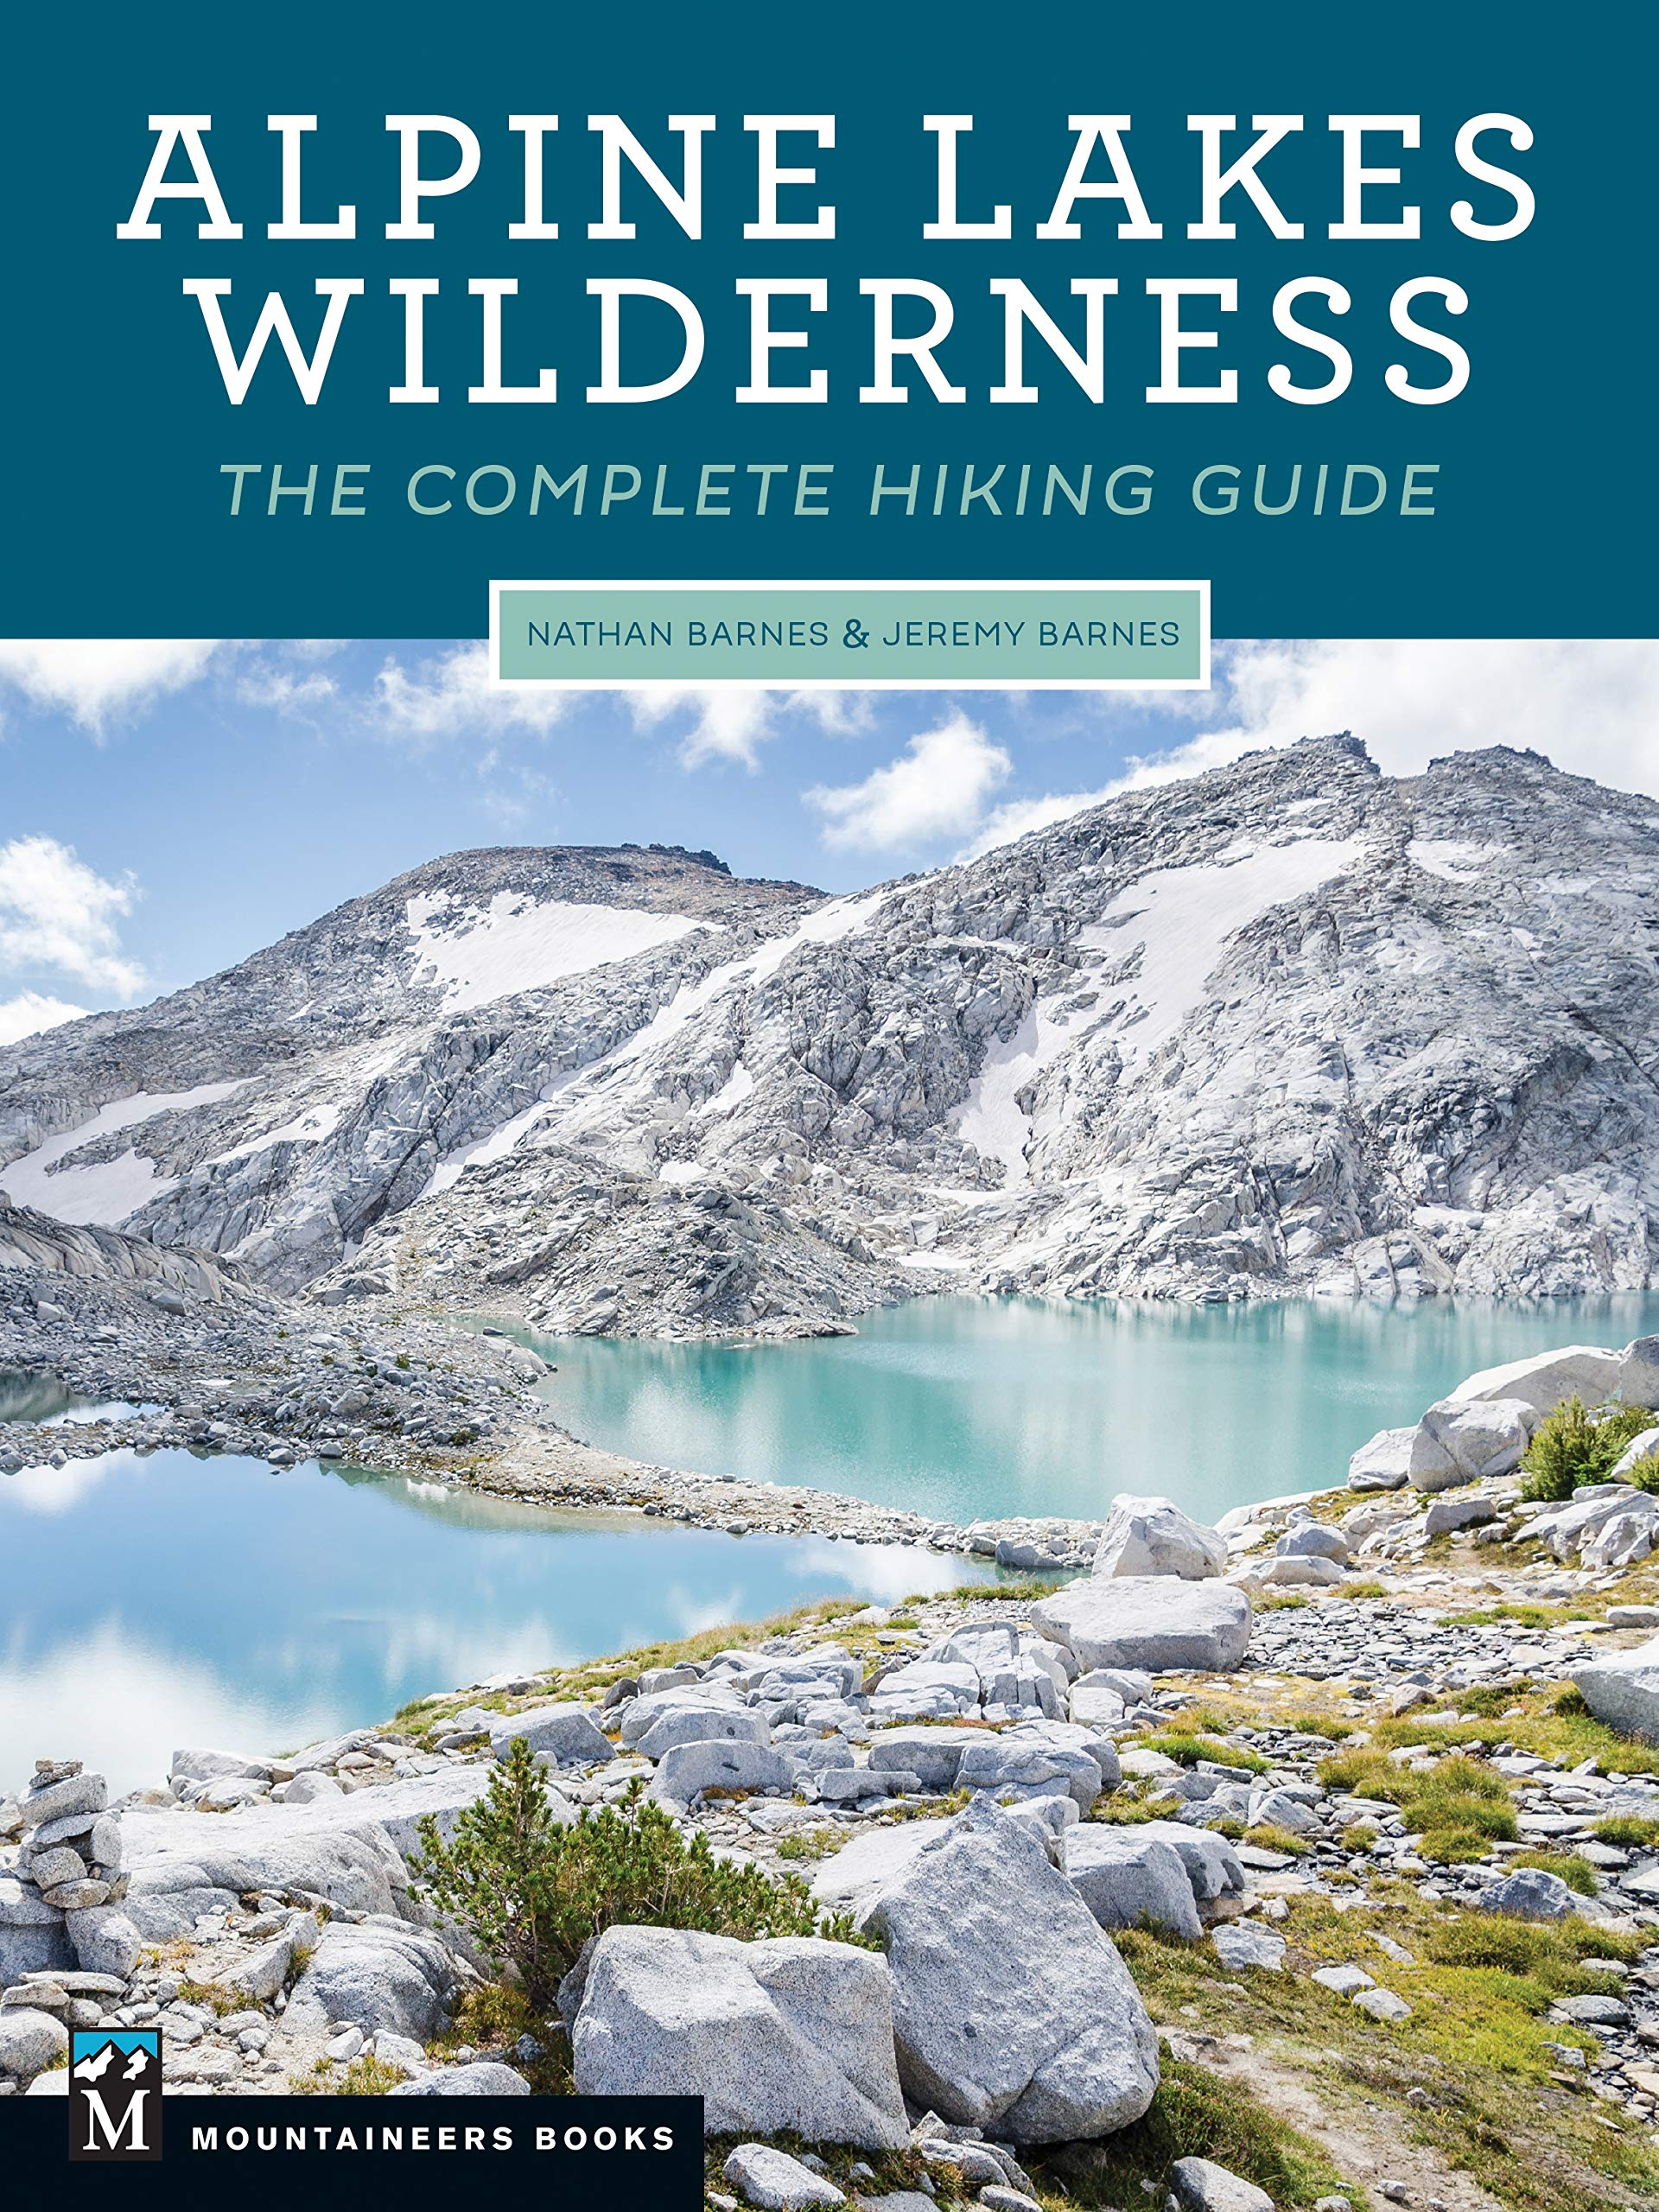 Alpine Lakes Wilderness: The Complete Hiking Guide by Brand: Mountaineers Books